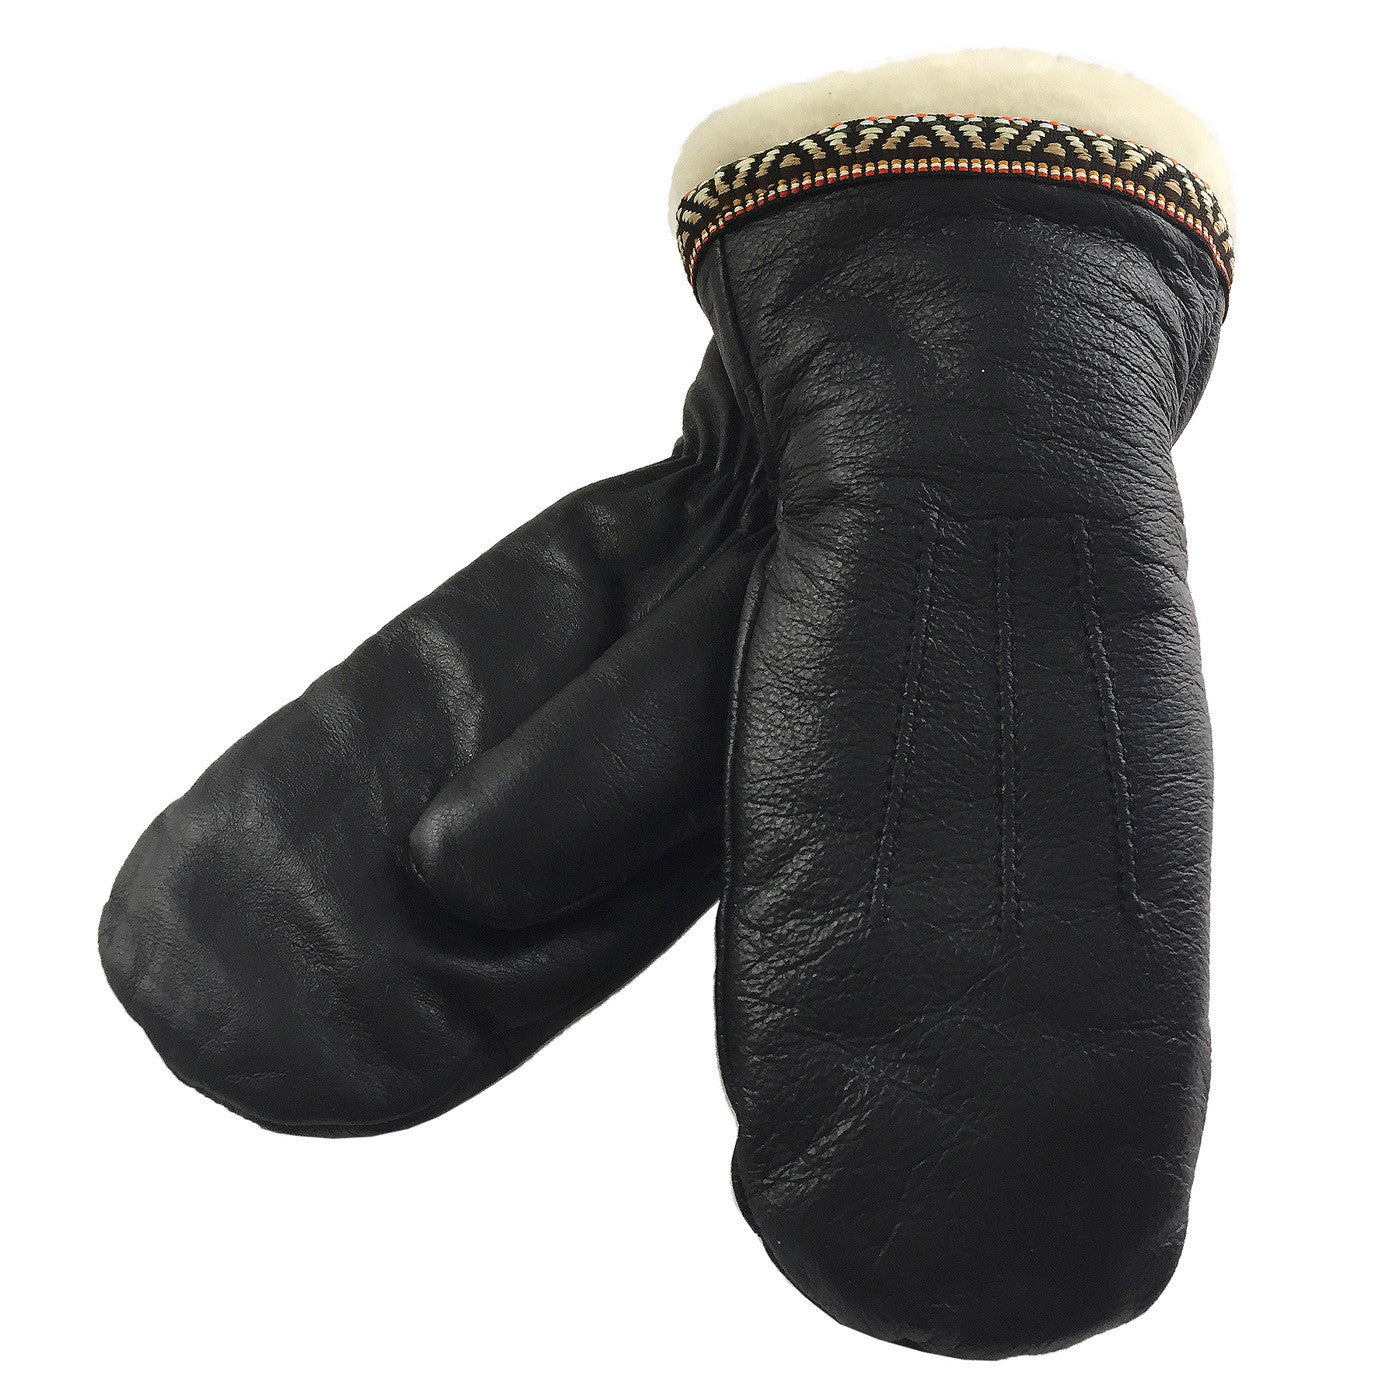 c963be6d8 Women's Black Genuine Leather with Removed Sheepskin Linner Mittens ...